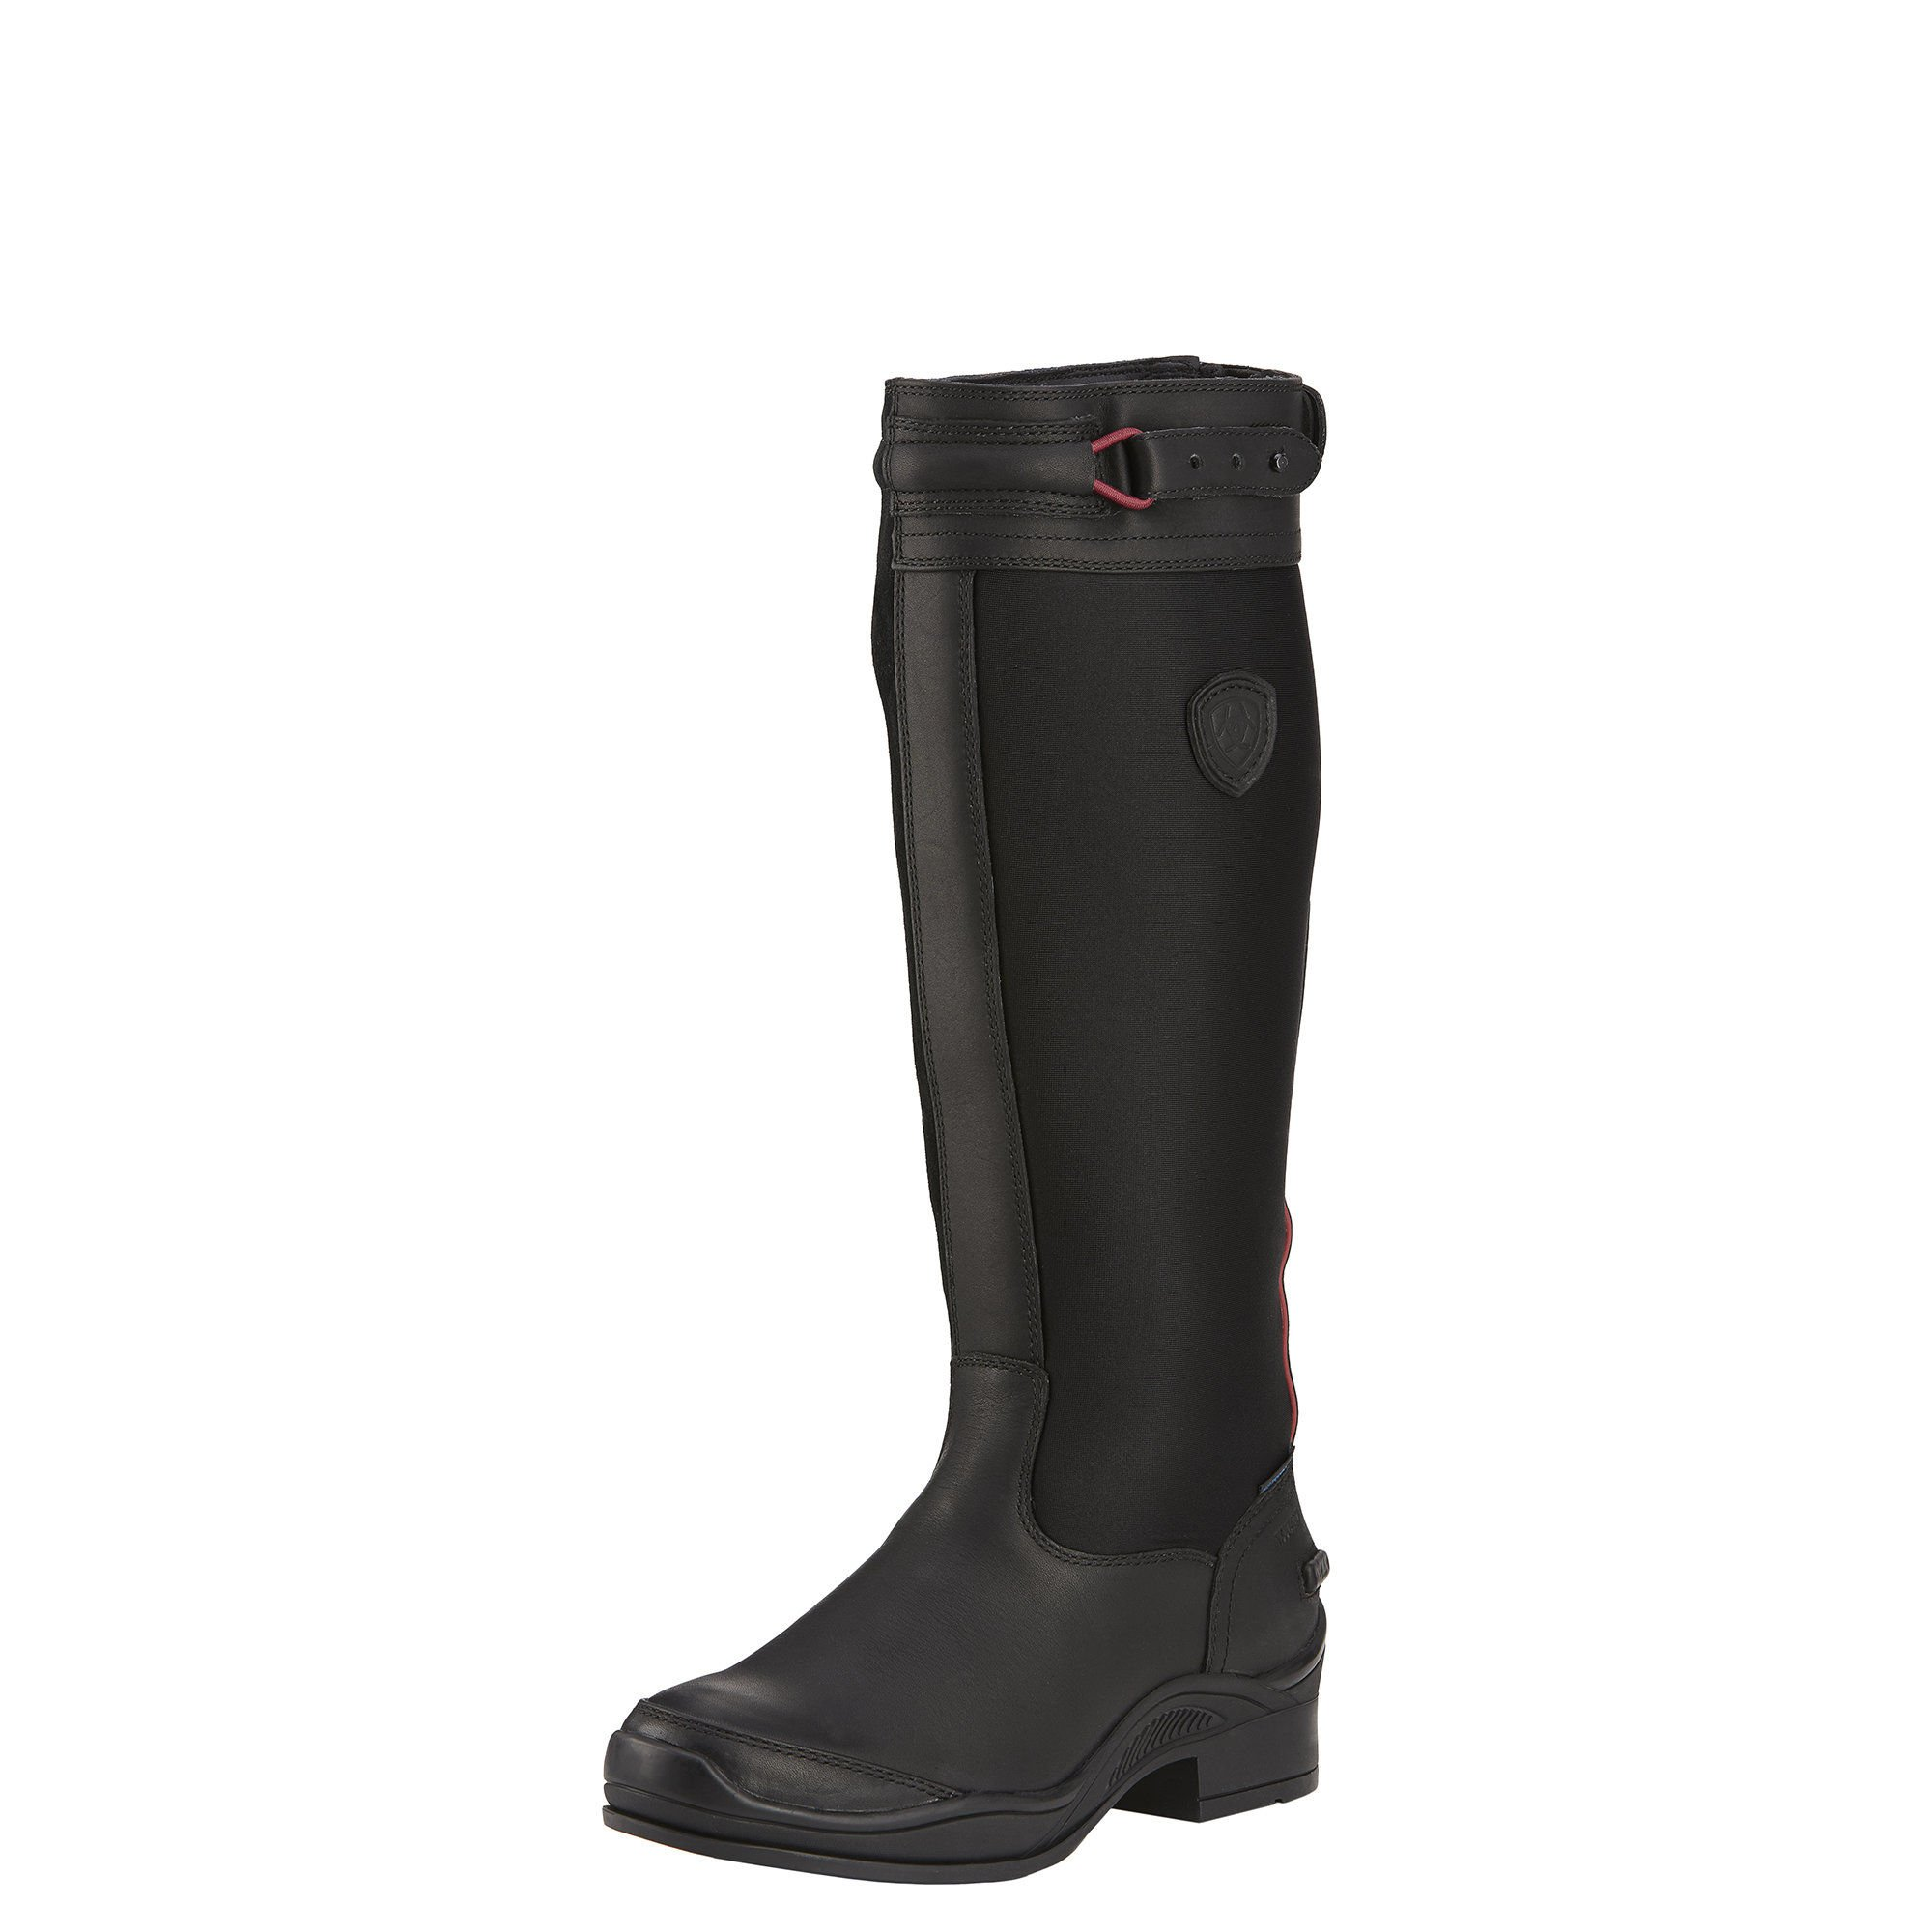 Ariat Womens Extreme Tall H2O Insulated Winter Riding 8 B / Medium(Calf Width) Black